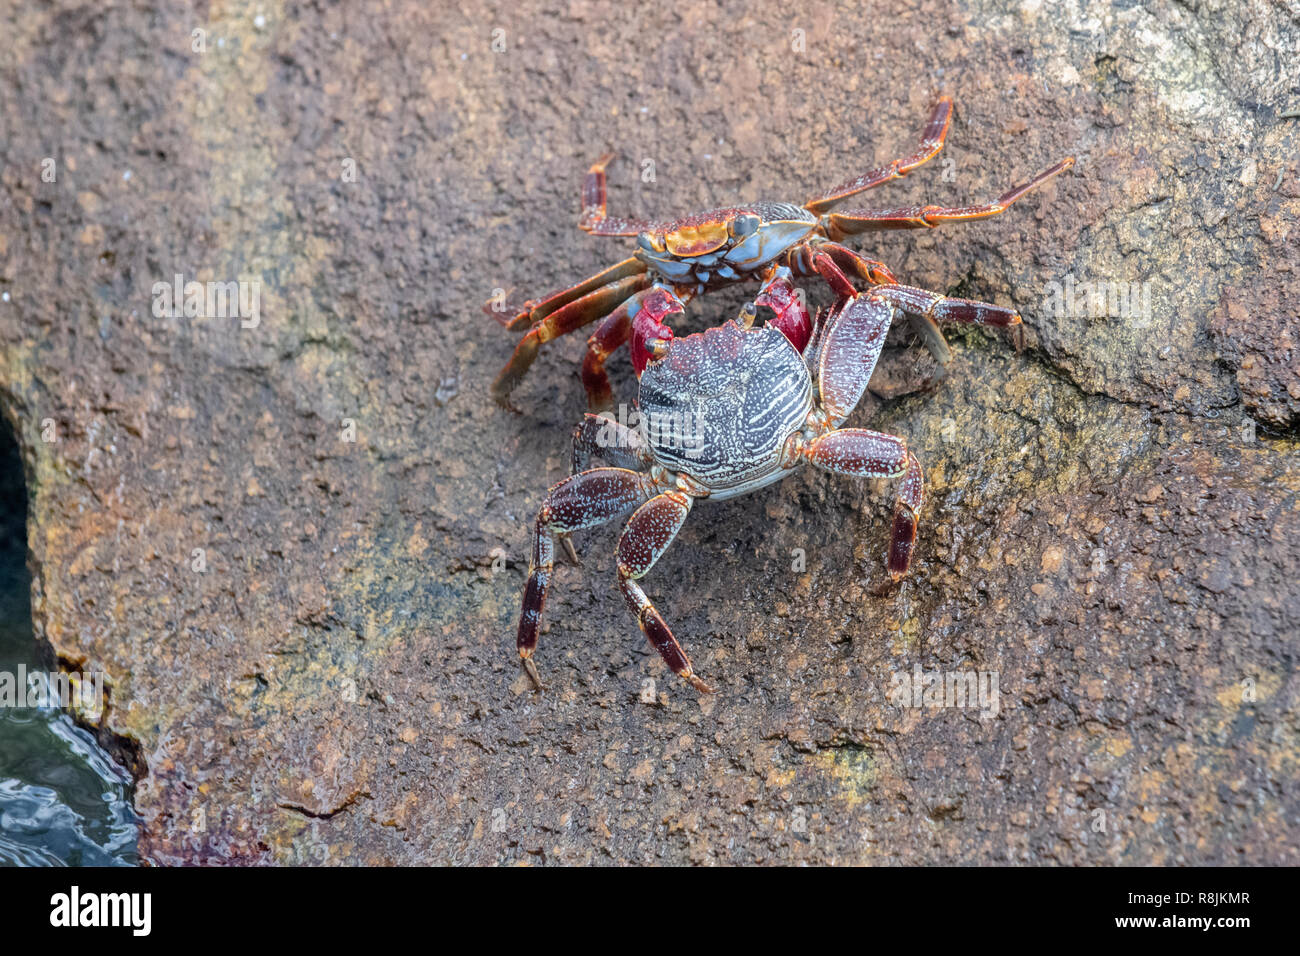 Sally Lightfoot crab fighting - Grapsus Grapsus on rock - red rock crabs with red claws battle and fight - Stock Image